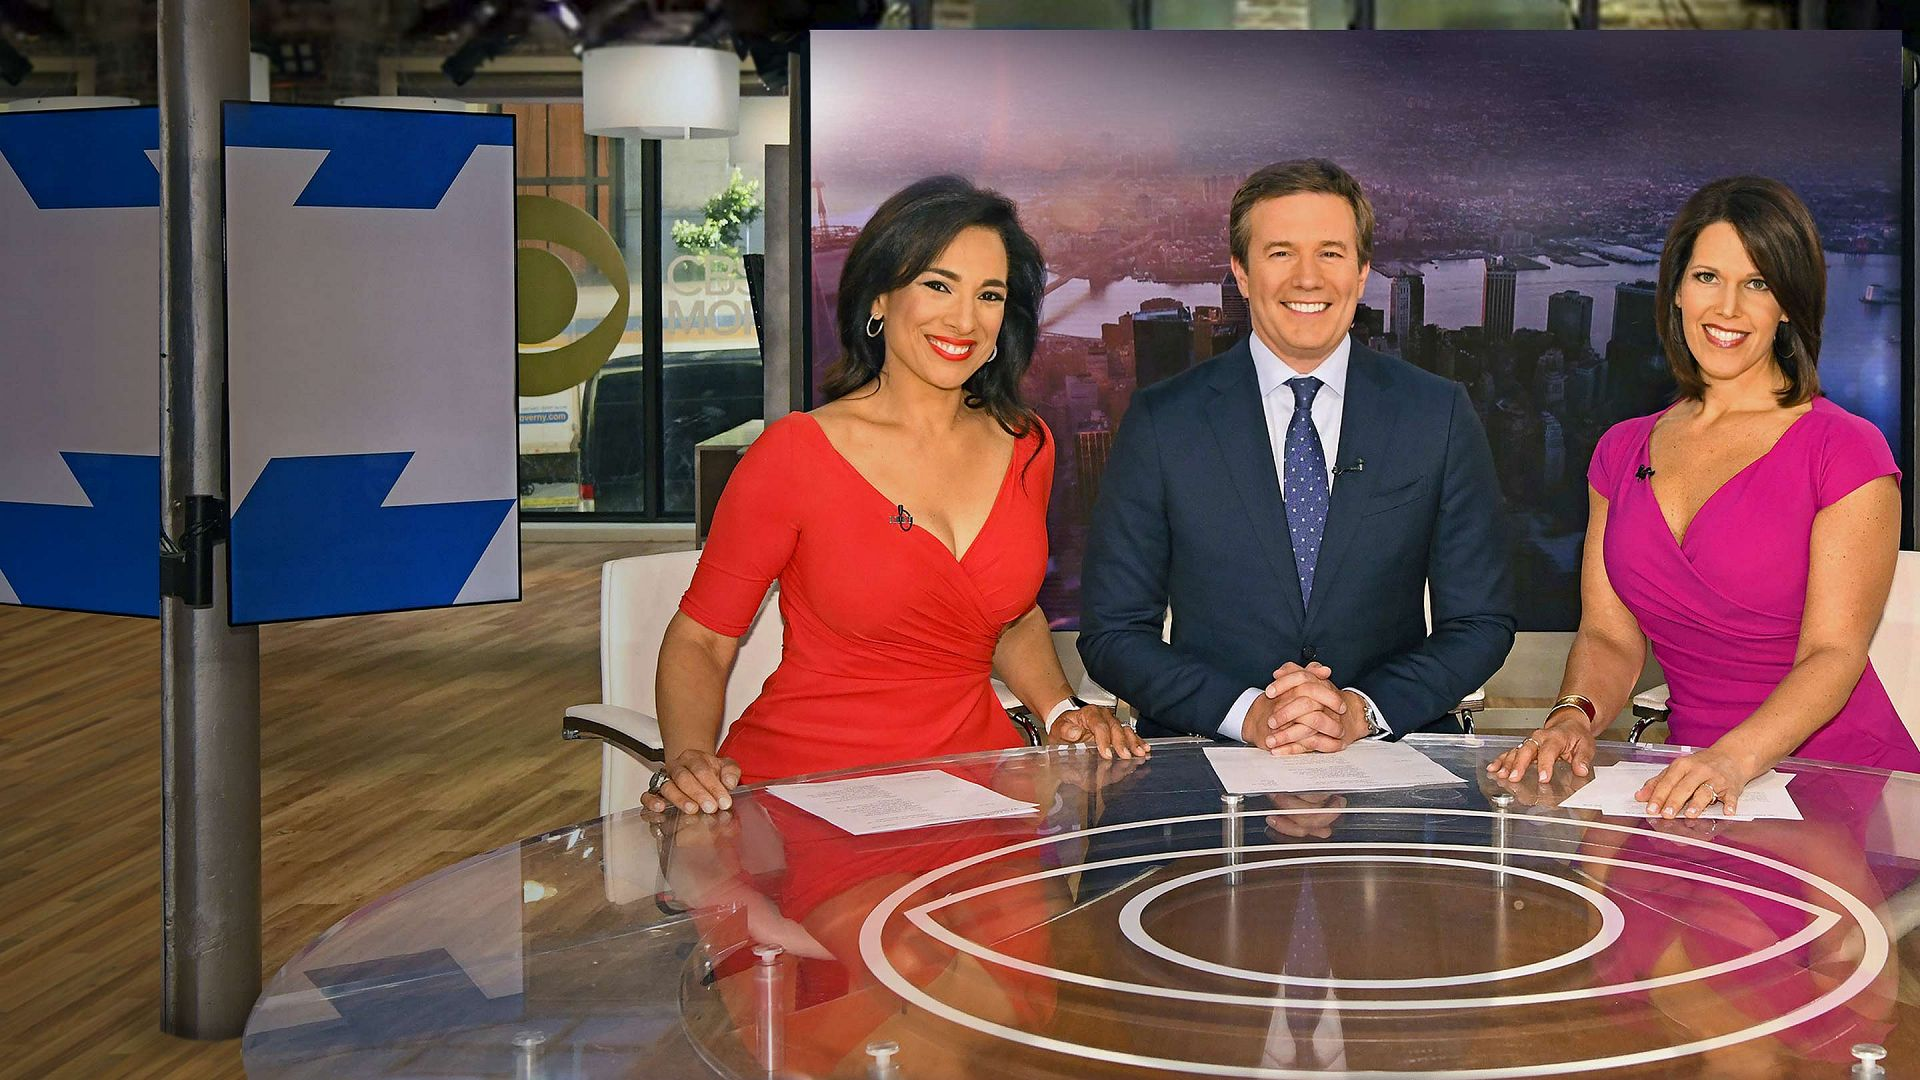 Cbs This Morning Saturday Official Site Watch On Cbs All Access